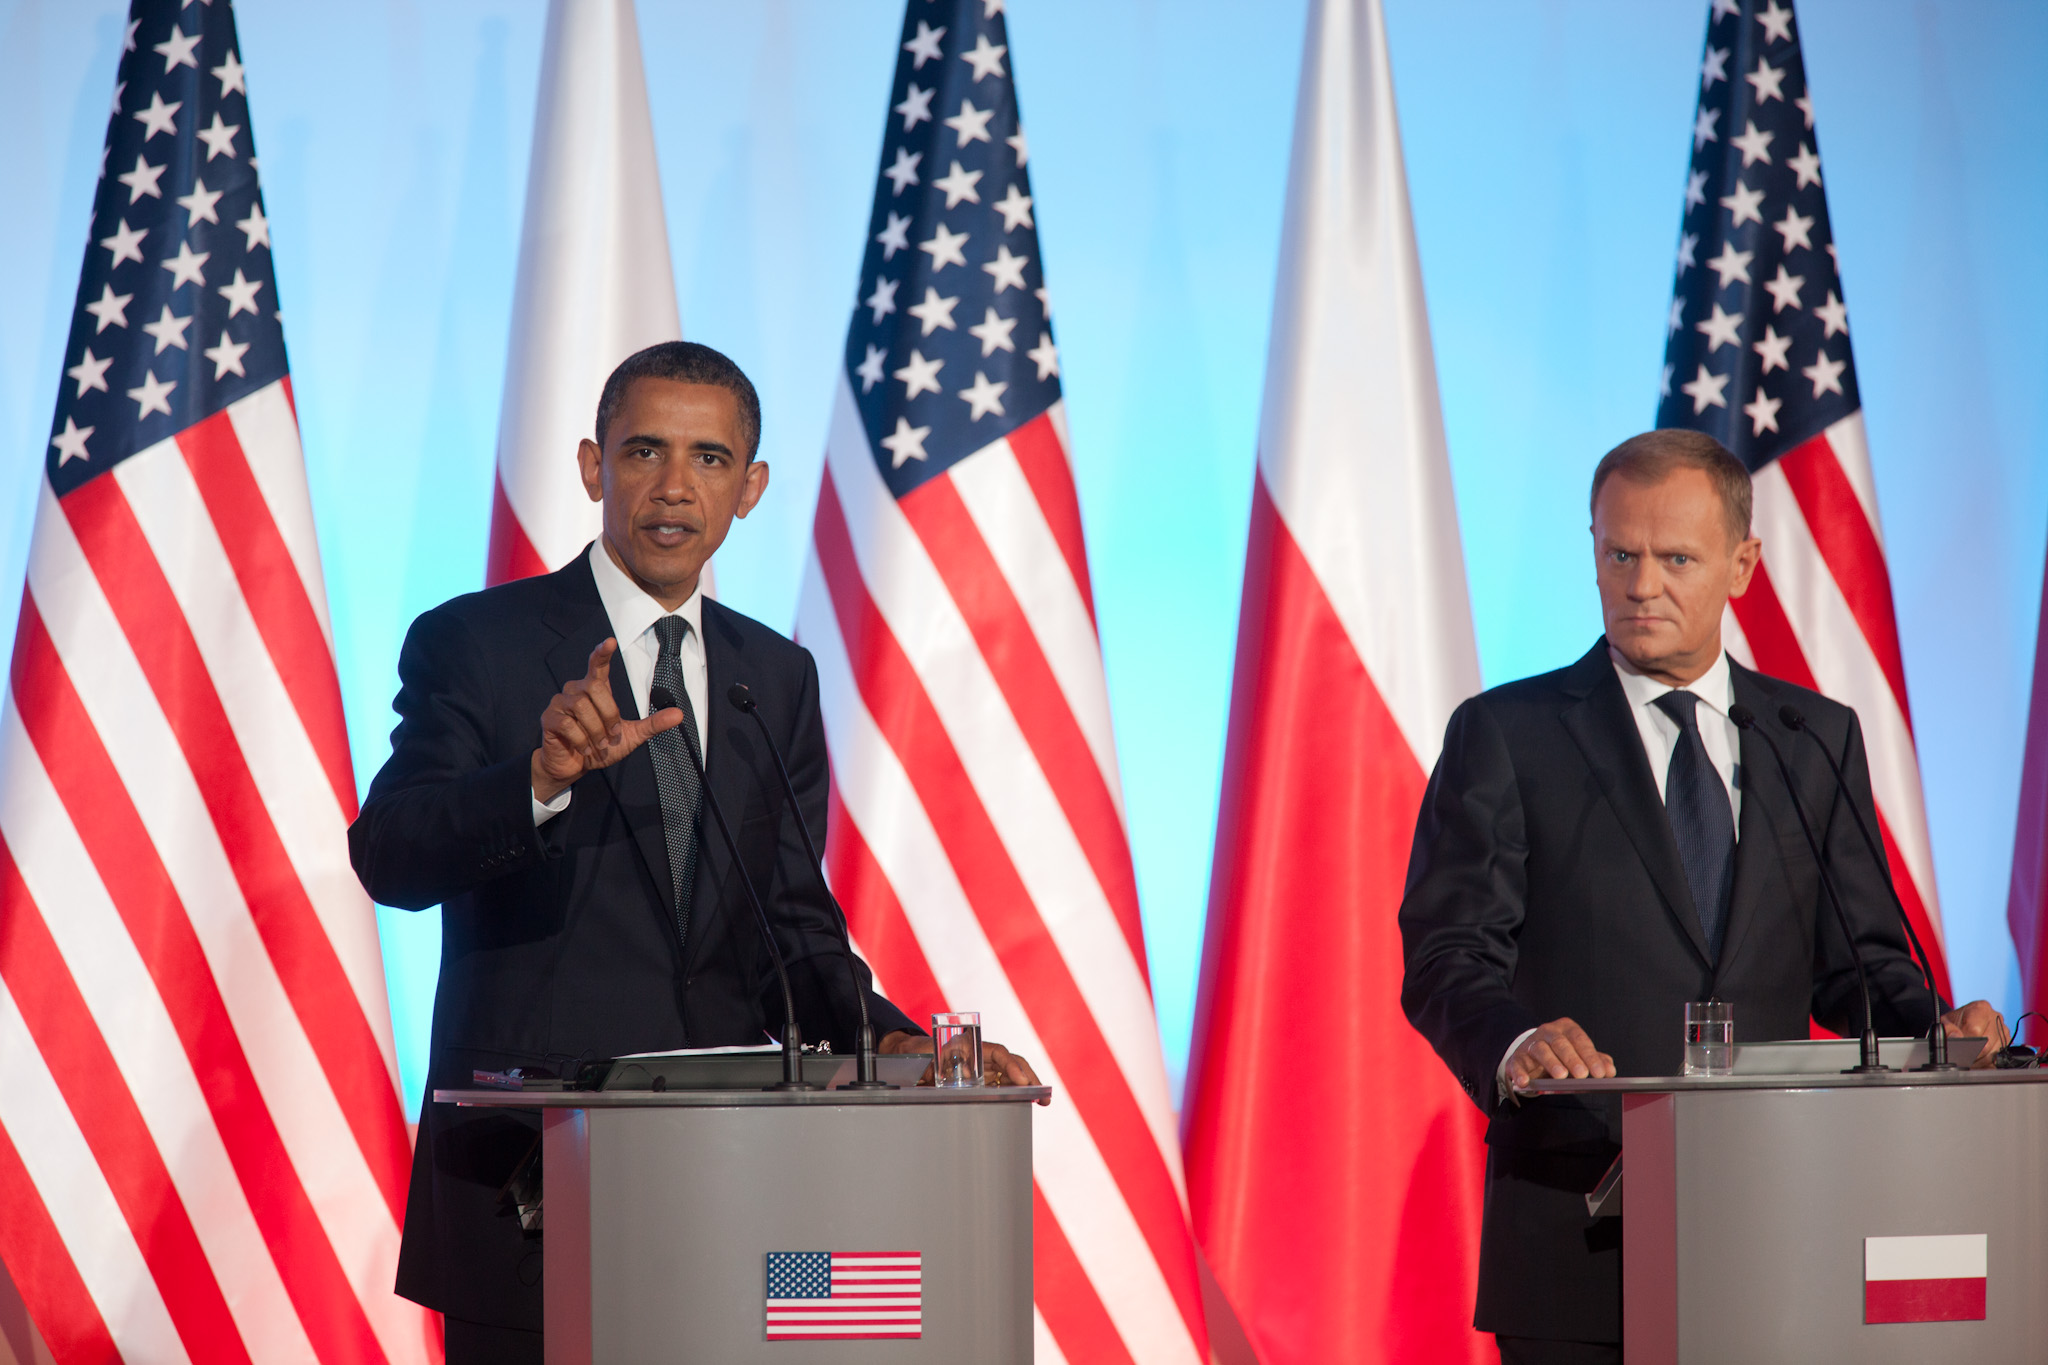 President Barack Obama and Polish Prime Minister Donald Tusk